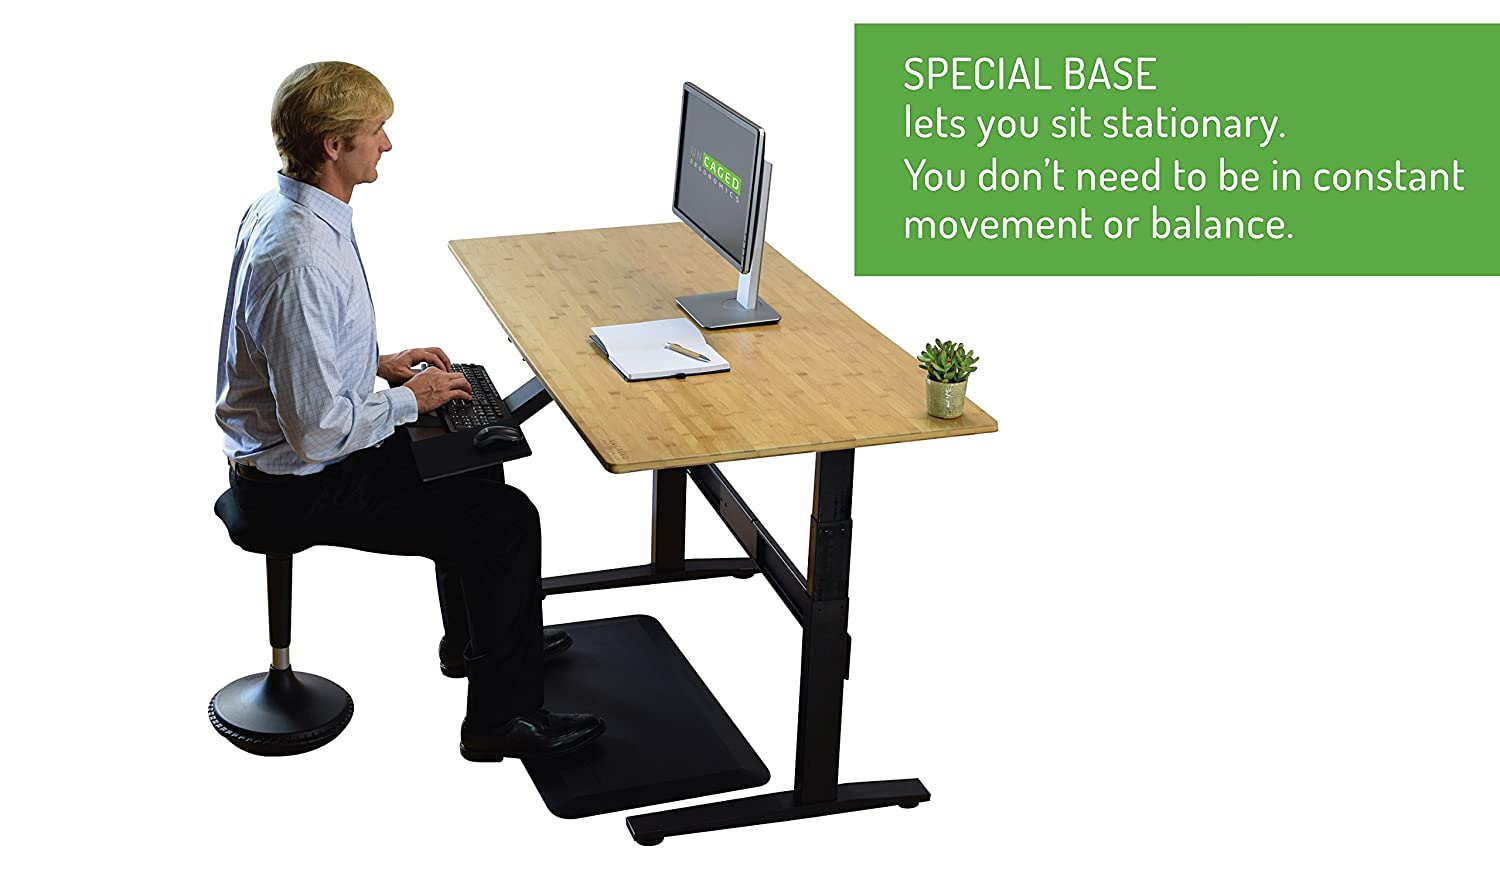 Simply owning an ergonomic chair is not enough if you don t know how - Amazon Com Uncaged Ergonomics Wobble Stool 2 Tall Adjustable Height Active Sitting Office Chair Ergonomic Standing Desk Swivel Stool Black Wsr B